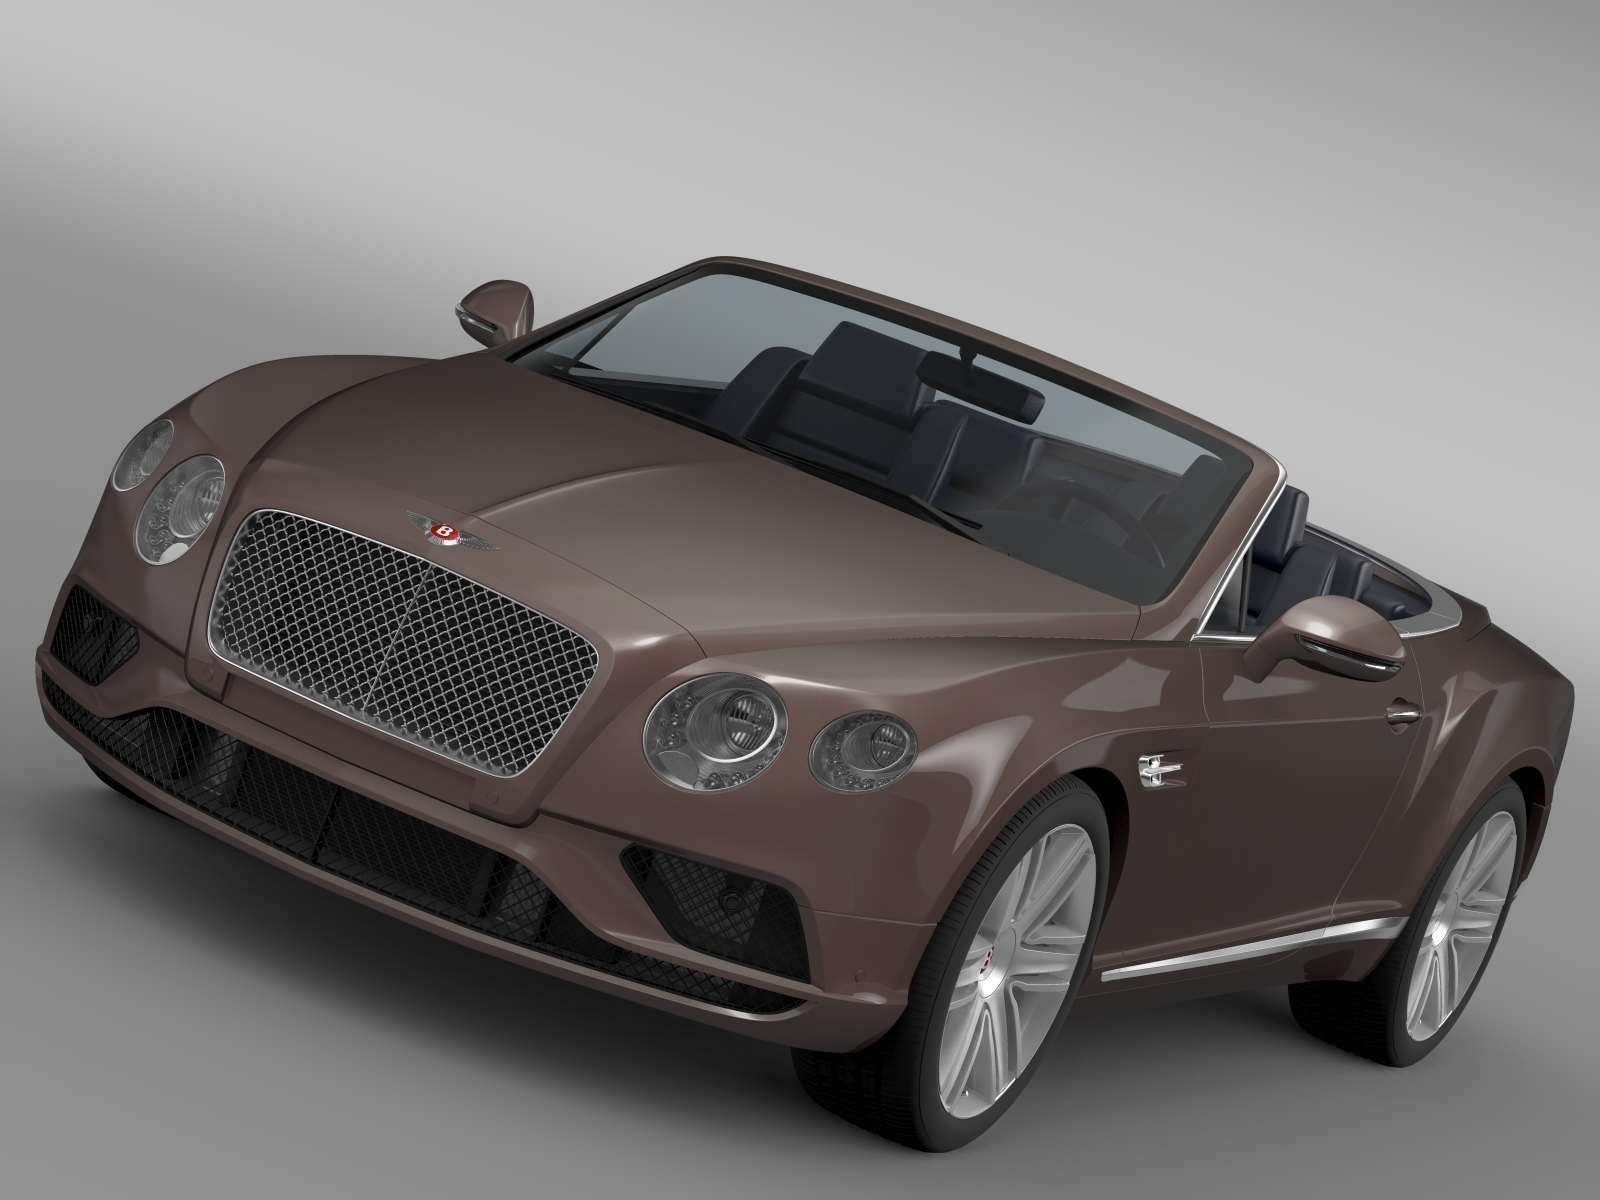 bentley continental gt v8 convertible 2015 3d model 3ds max fbx c4d lwo ma mb hrc xsi obj 211182